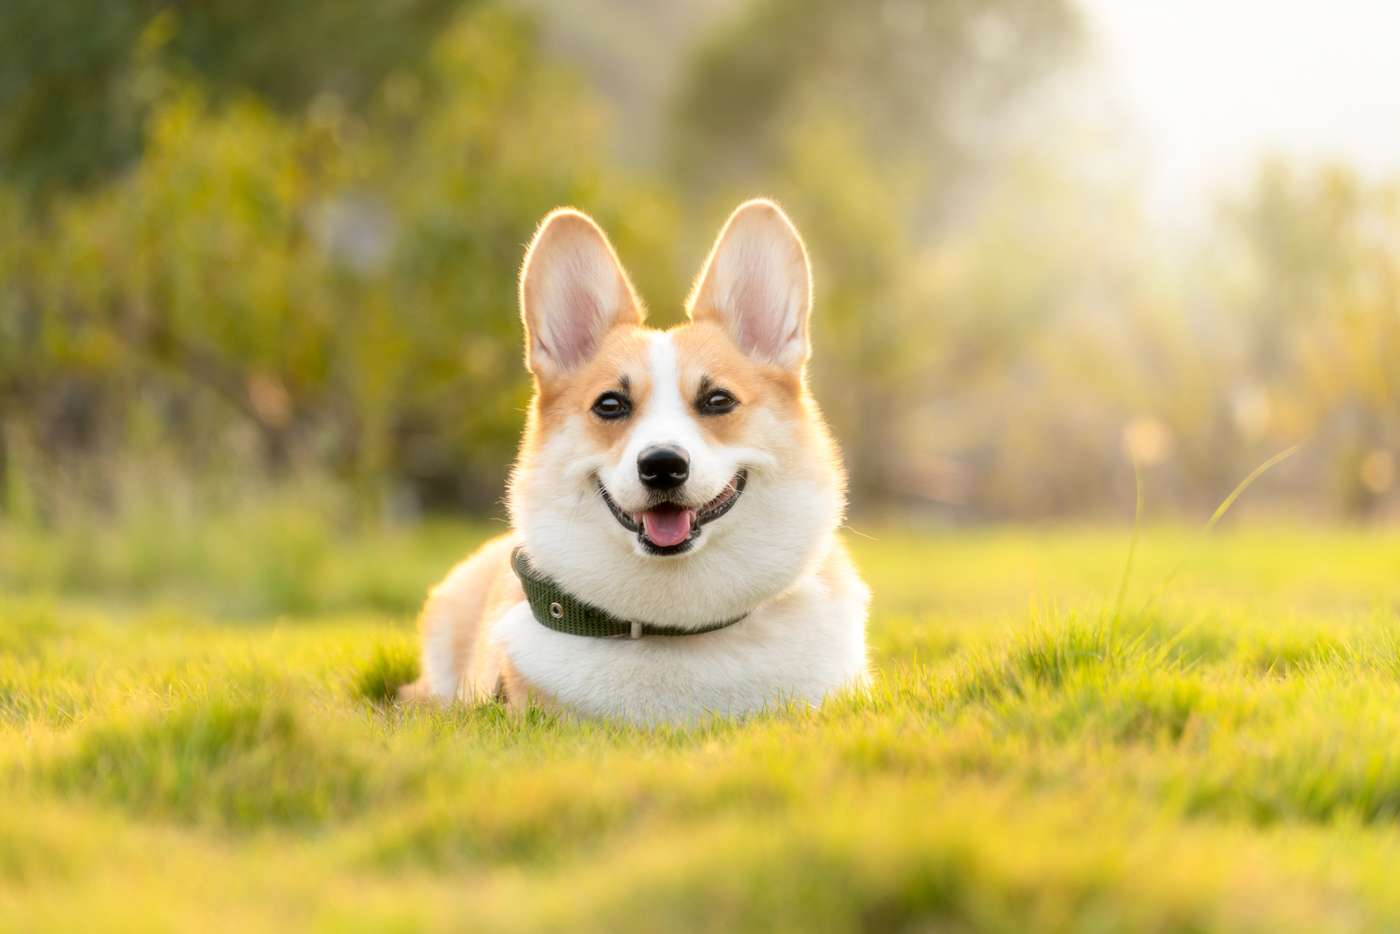 A Corgi laying down on grass with the sun set behind it